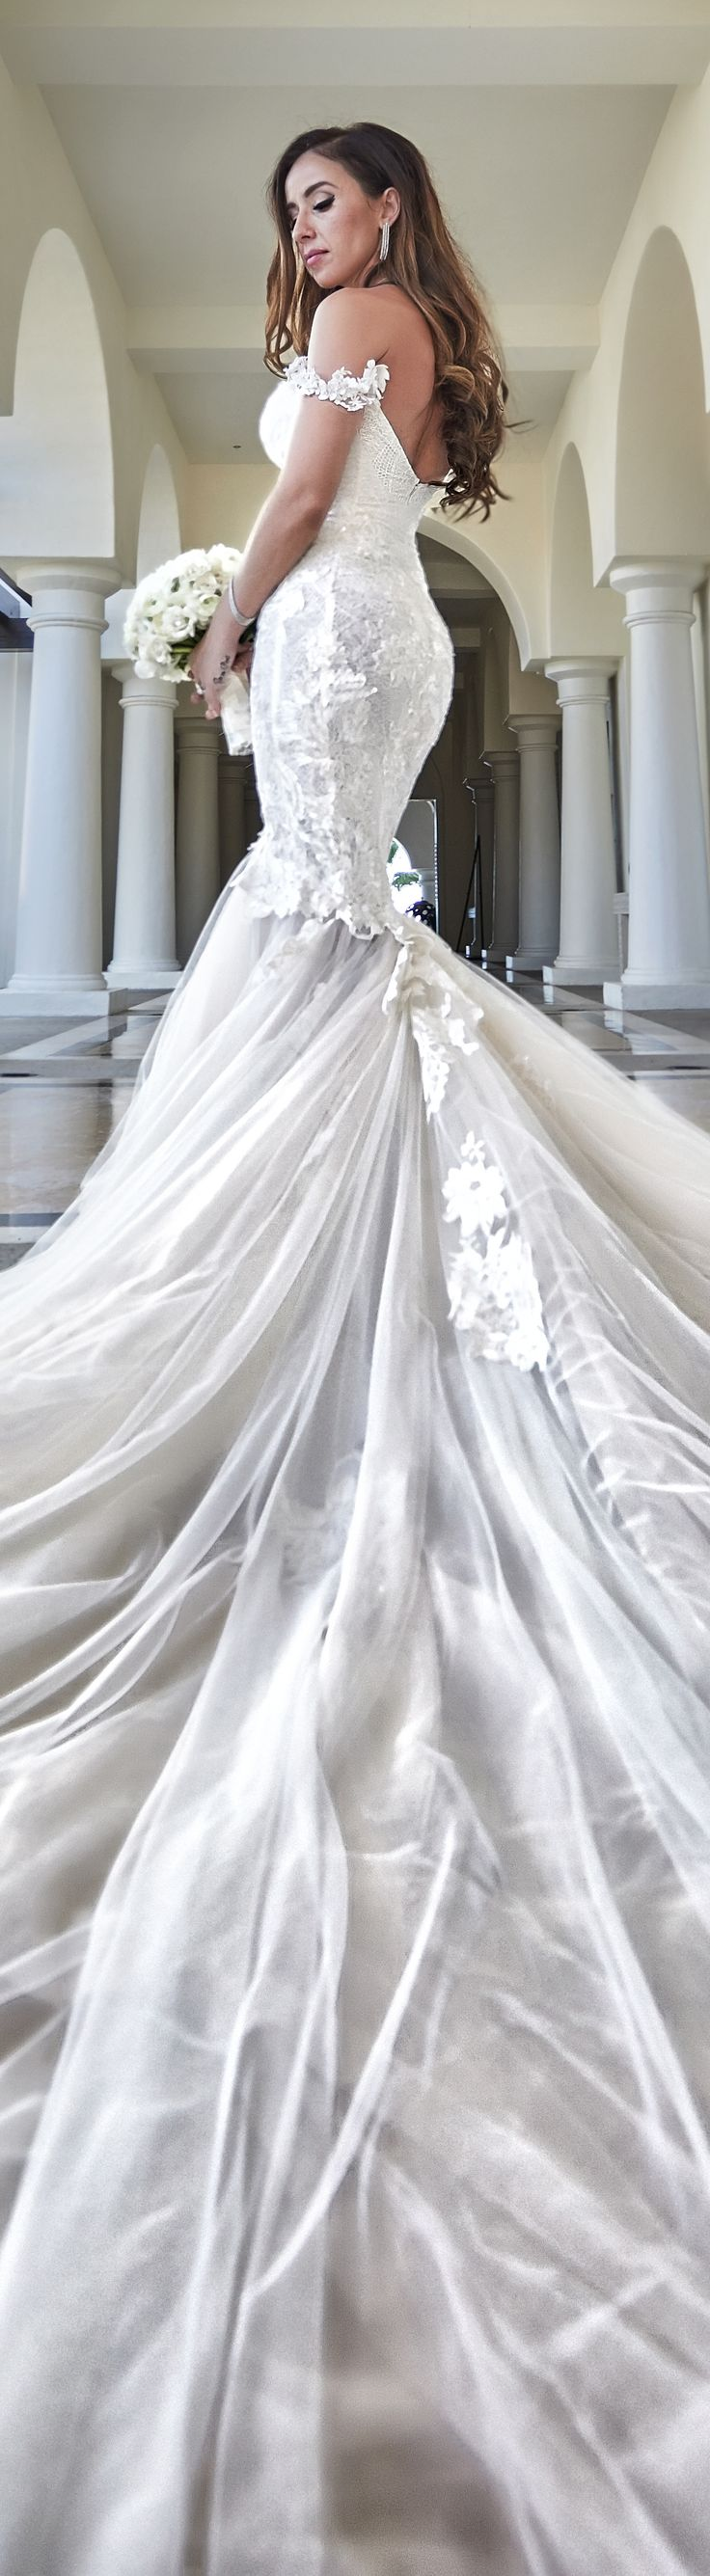 1500 best BRIDAL BLISS❤ images on Pinterest | Wedding ideas, Gown ...